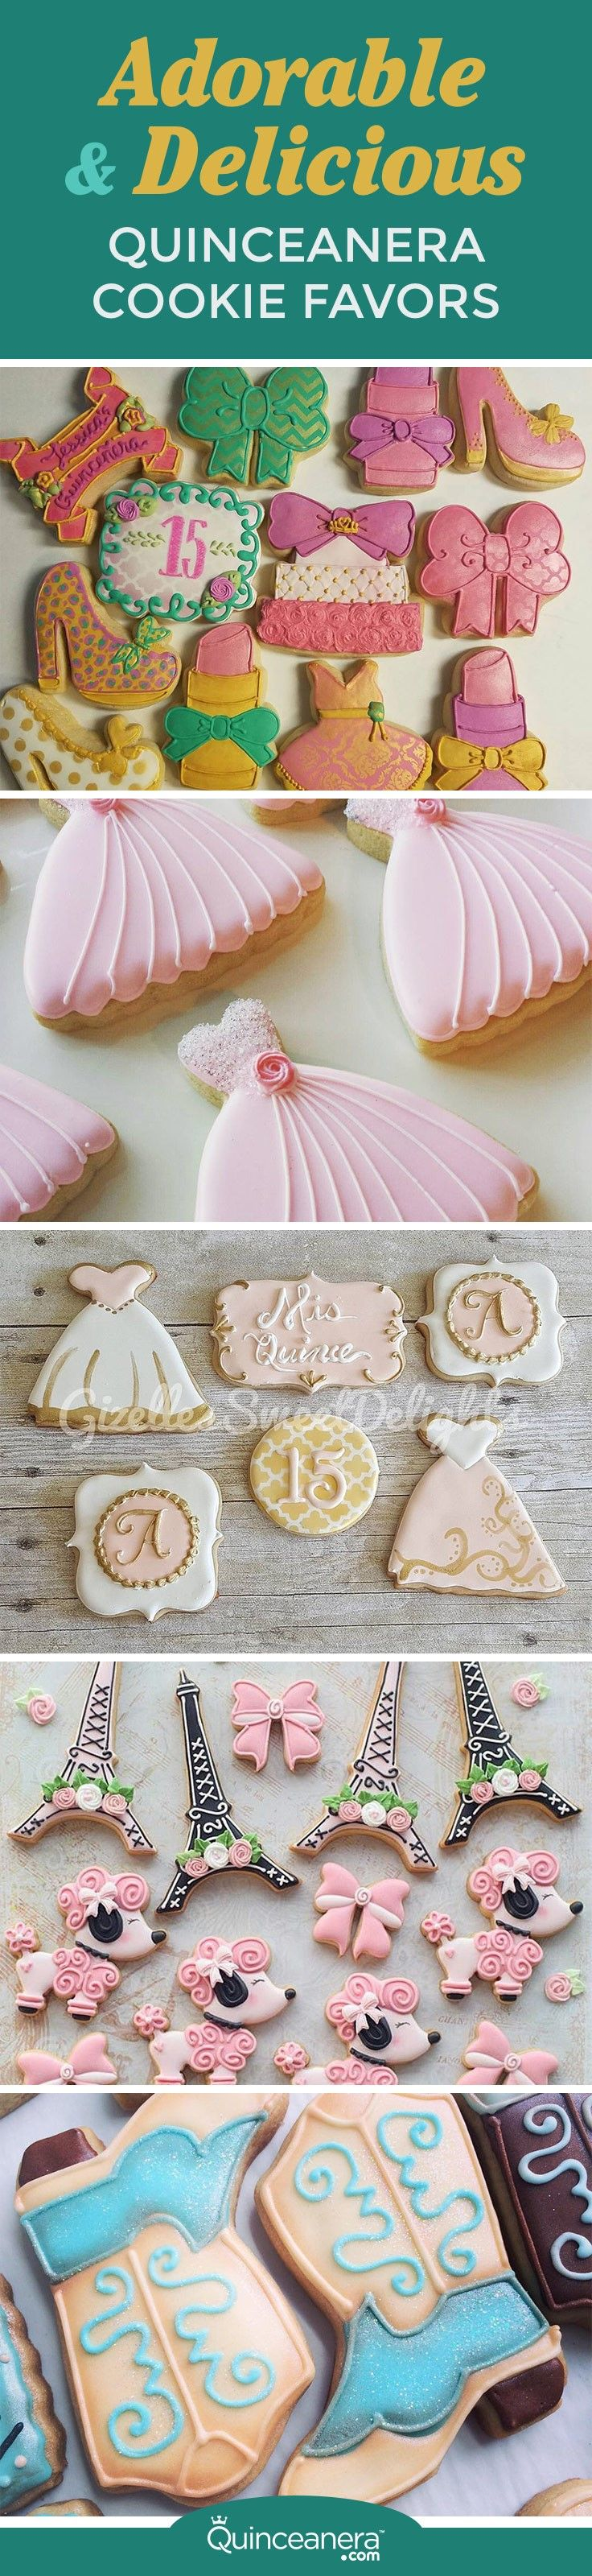 Wow your guests the moment they sink their teeth into your quinceanera cookie favors! - See more at: http://www.quinceanera.com/food/quinceanera-cookie-favors/#sthash.3gCoXrYm.dpuf